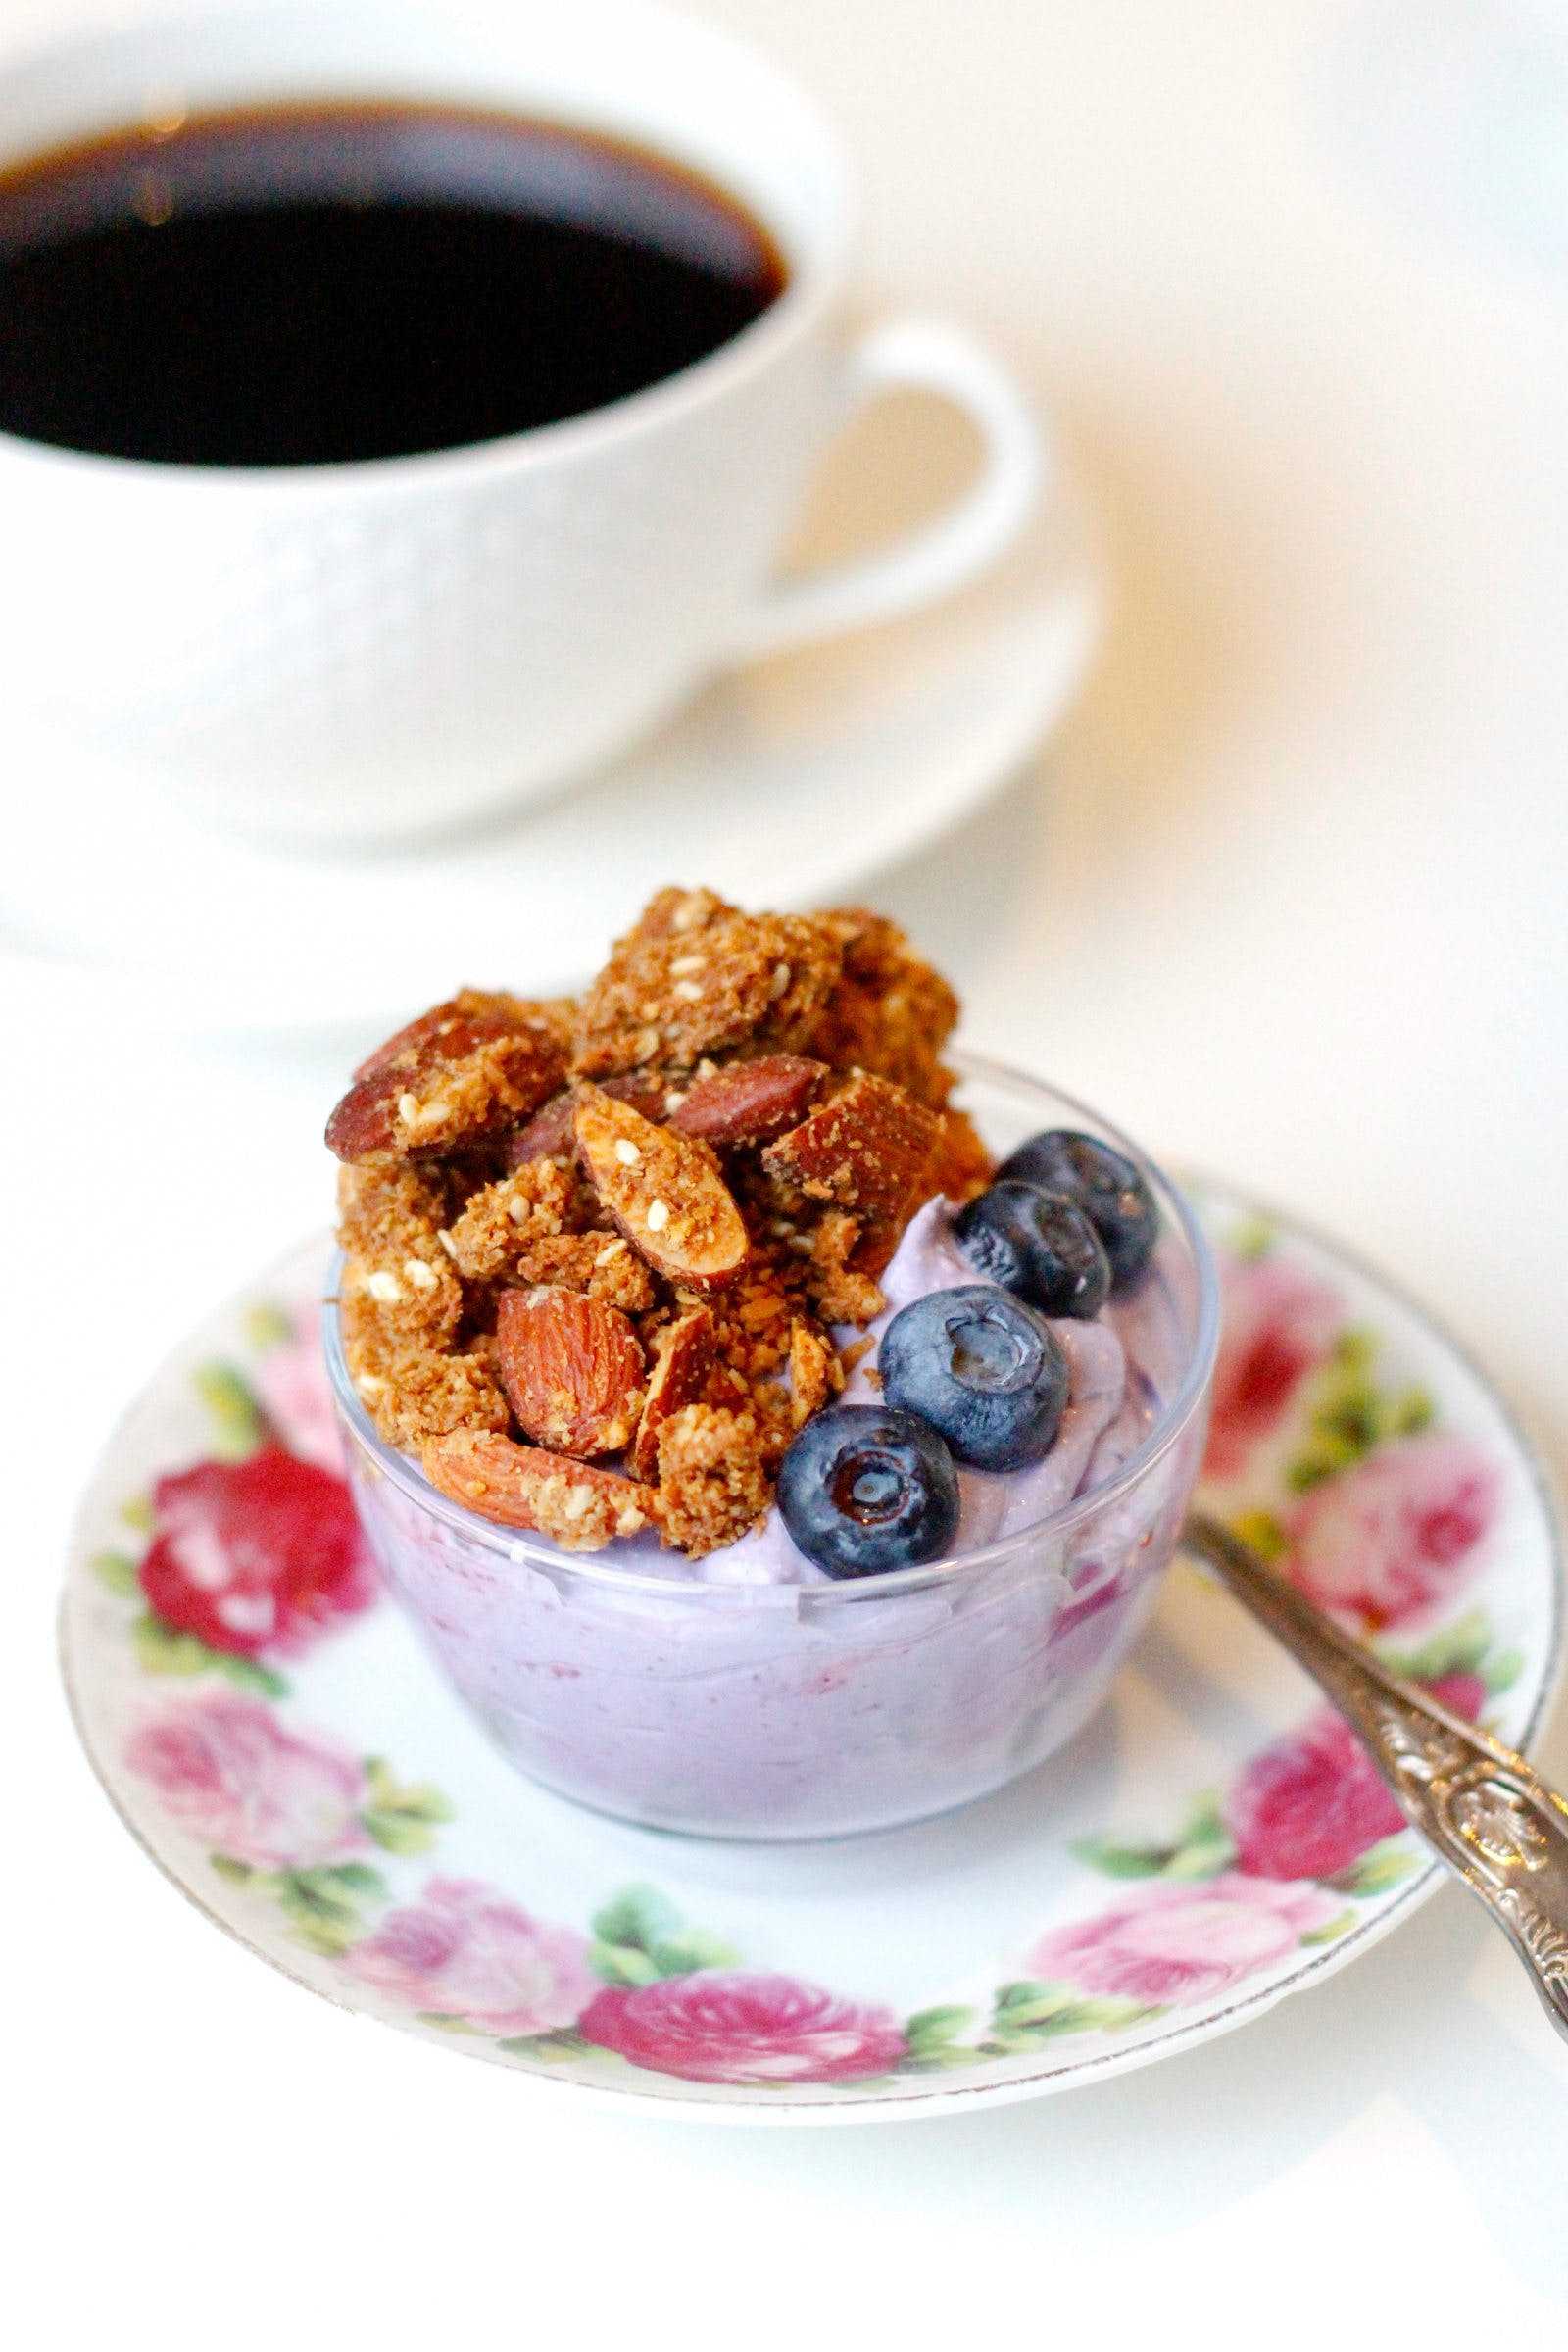 Low-carb ginger and licorice granola